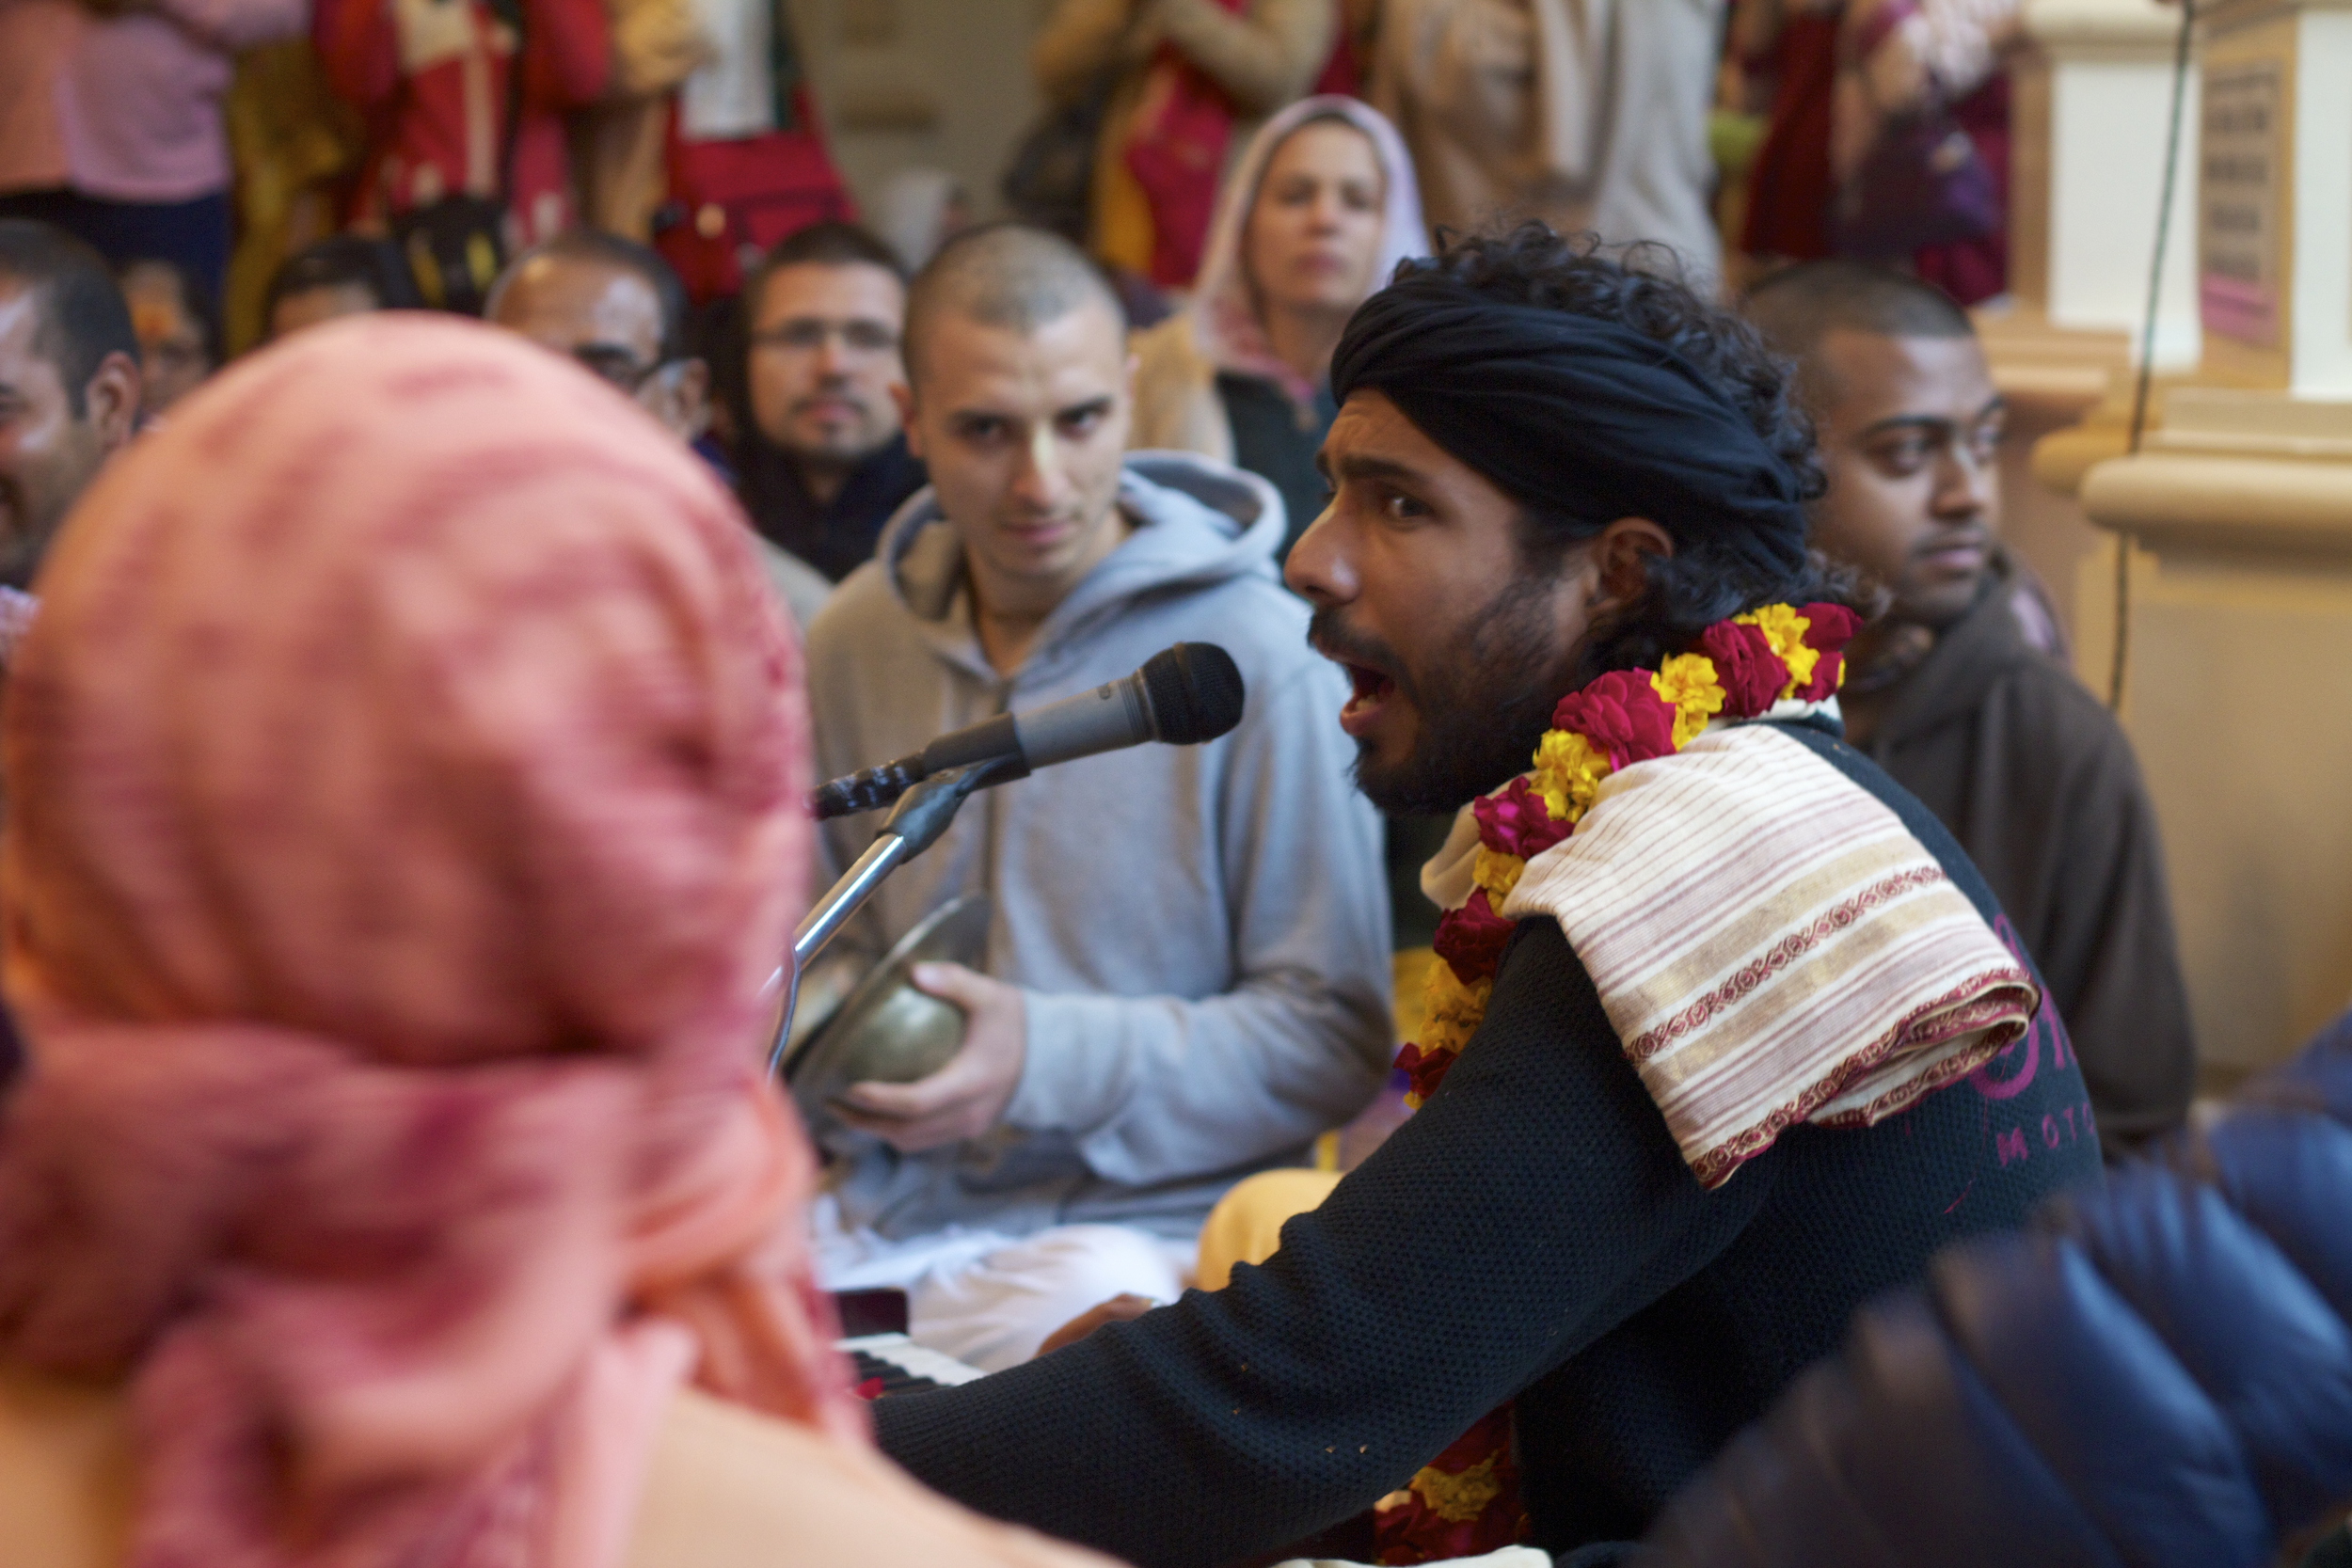 A musician leads a Hare Krishna chant among devotees in the ISKCON mandir in Vrindavan, India.